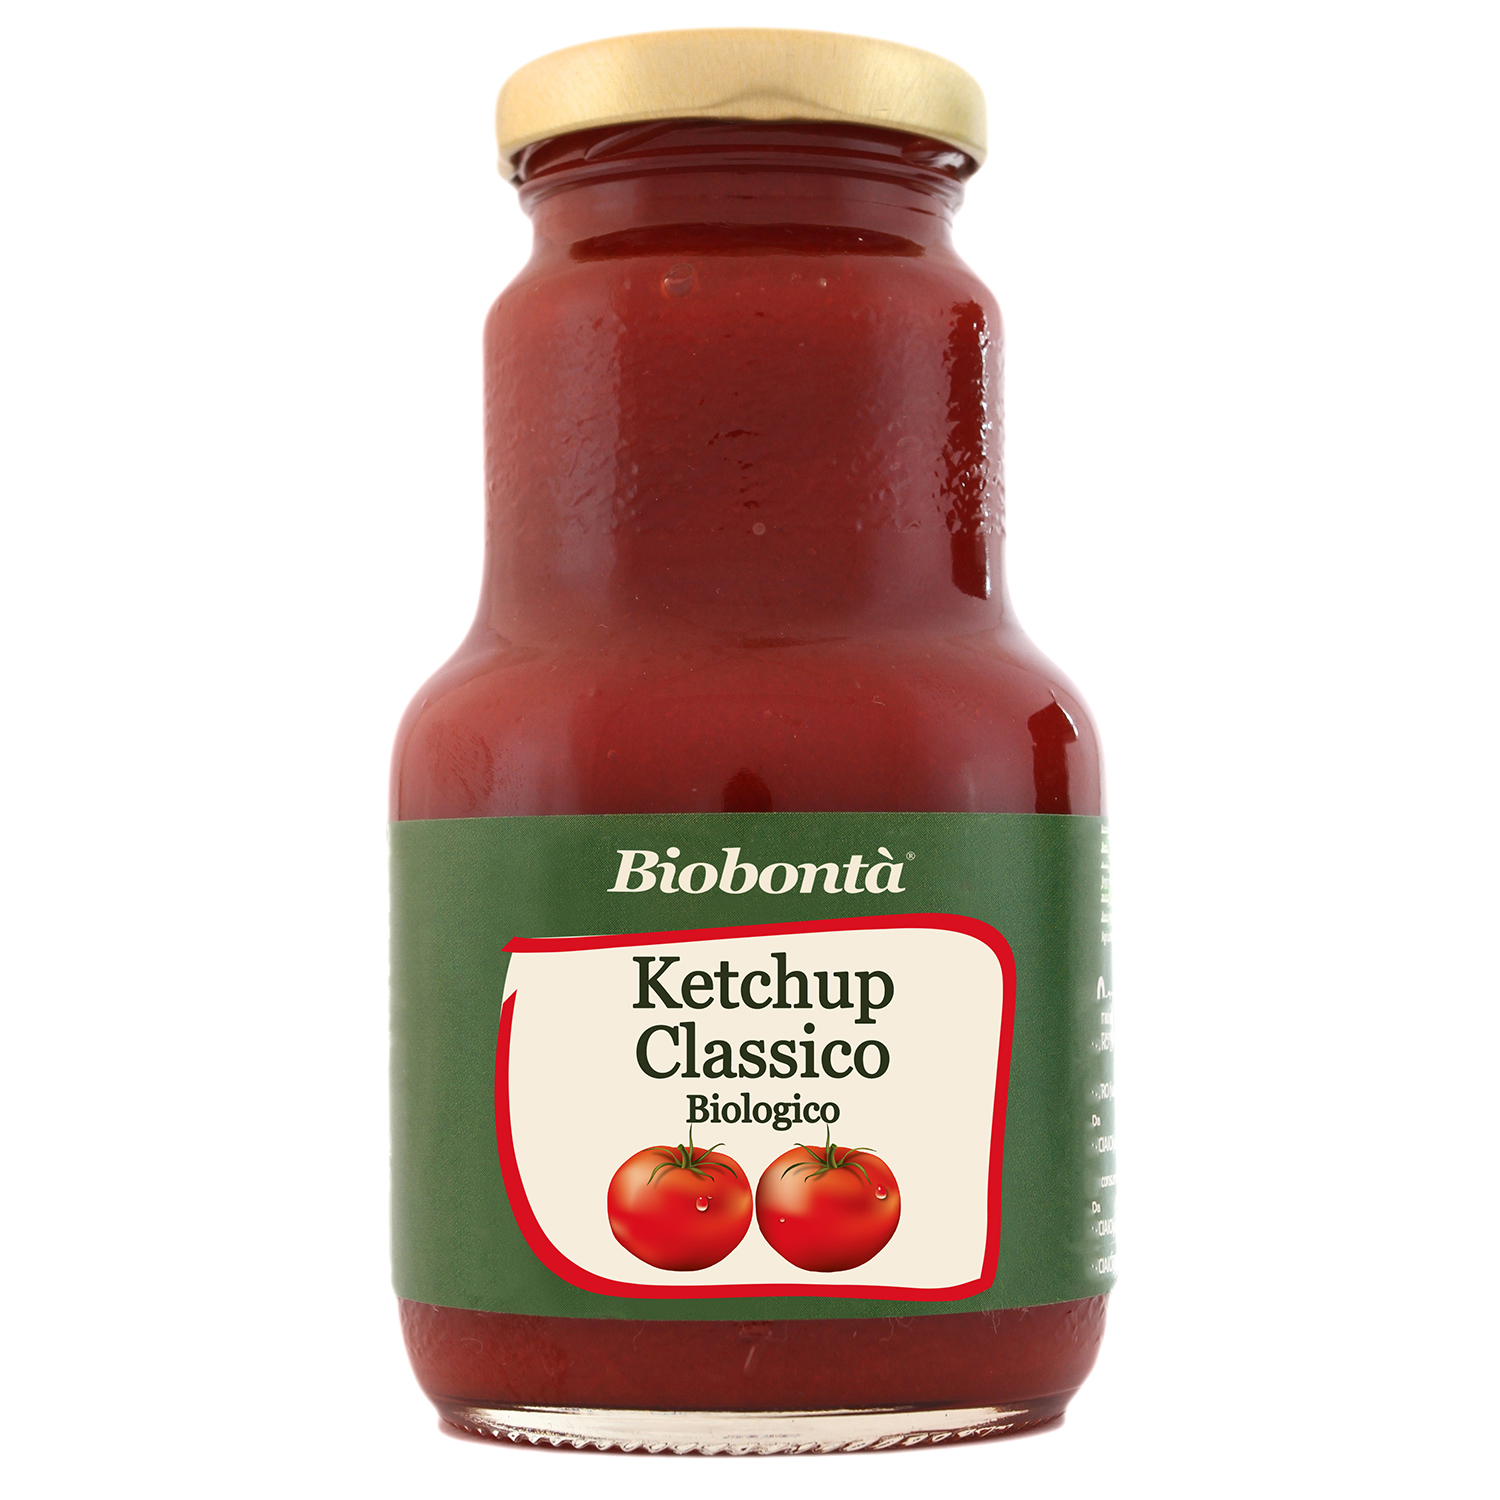 Classic Ketchup g 230 - Organic, Gluten free, condiment, Italy, TUTTOVO SRL